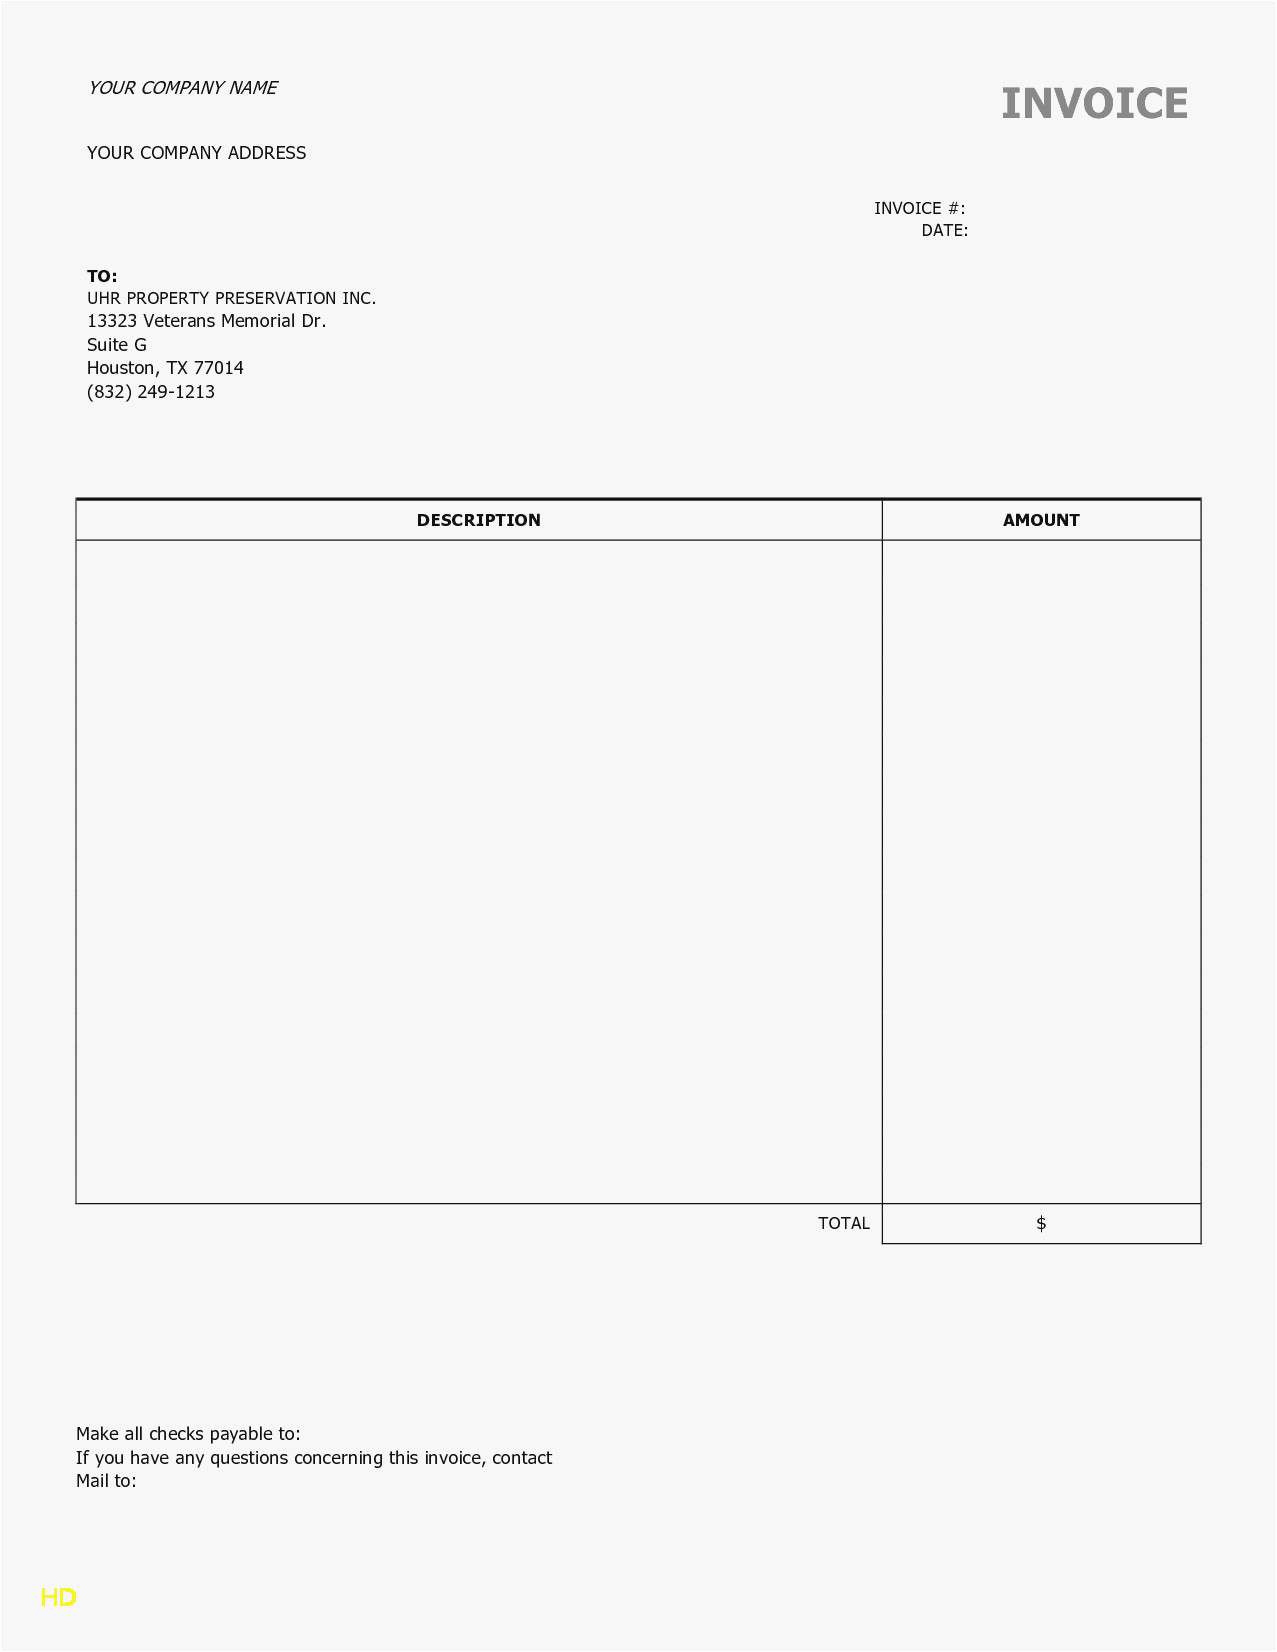 Independent Contractor Invoice Template Pdf Elegant 22 Free Independent Contractor Invoice Template Pdf 2018